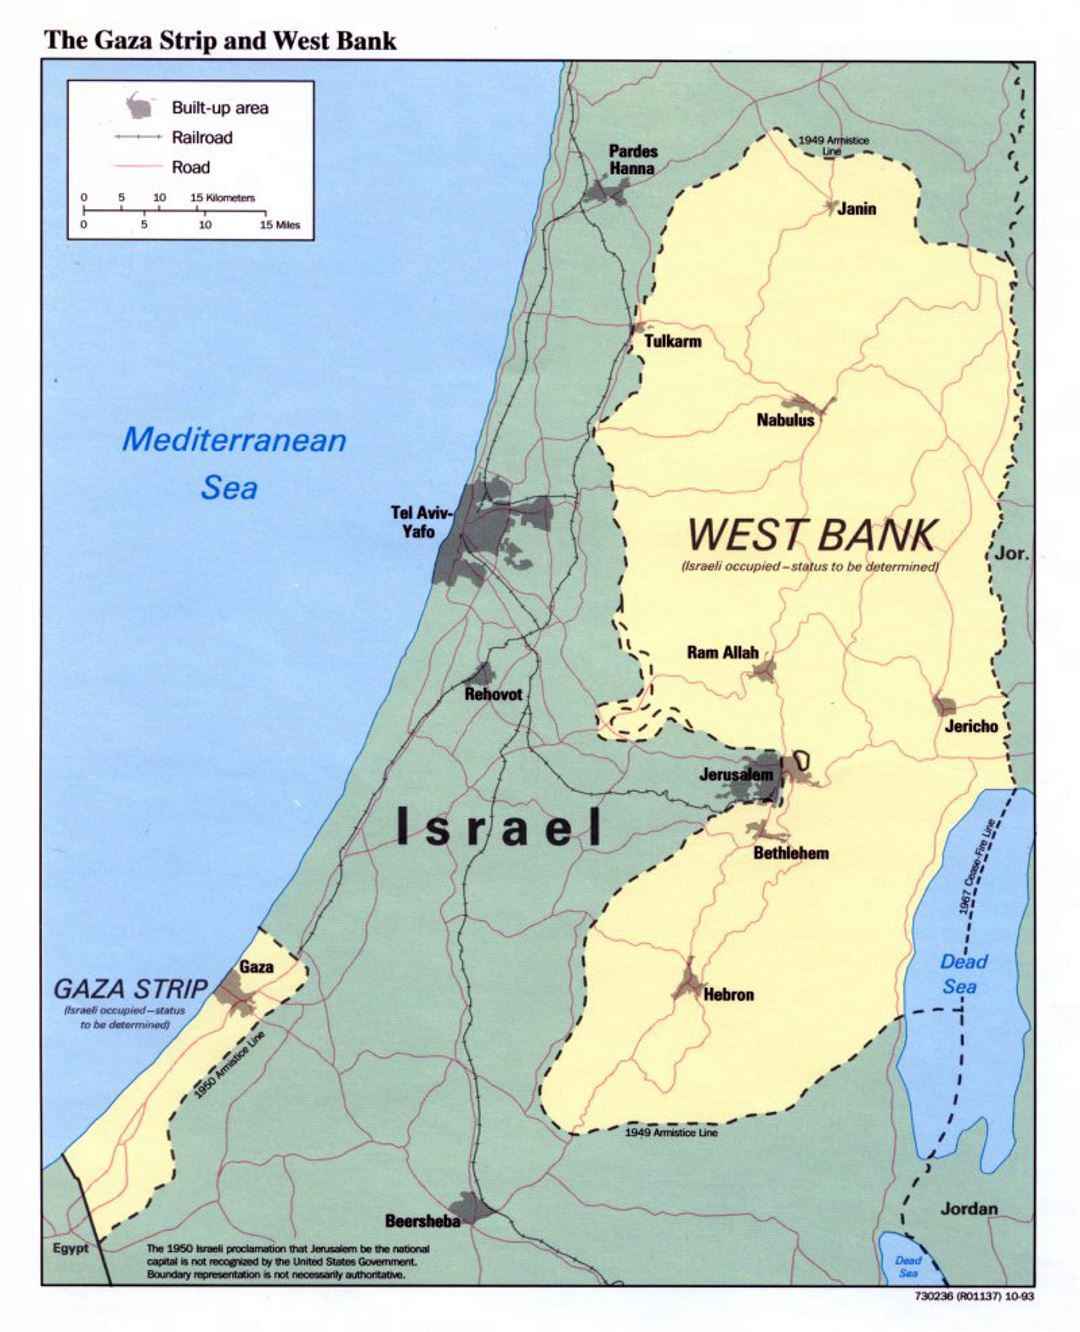 Detailed political map of the Gaza Strip and West Bank - 1993